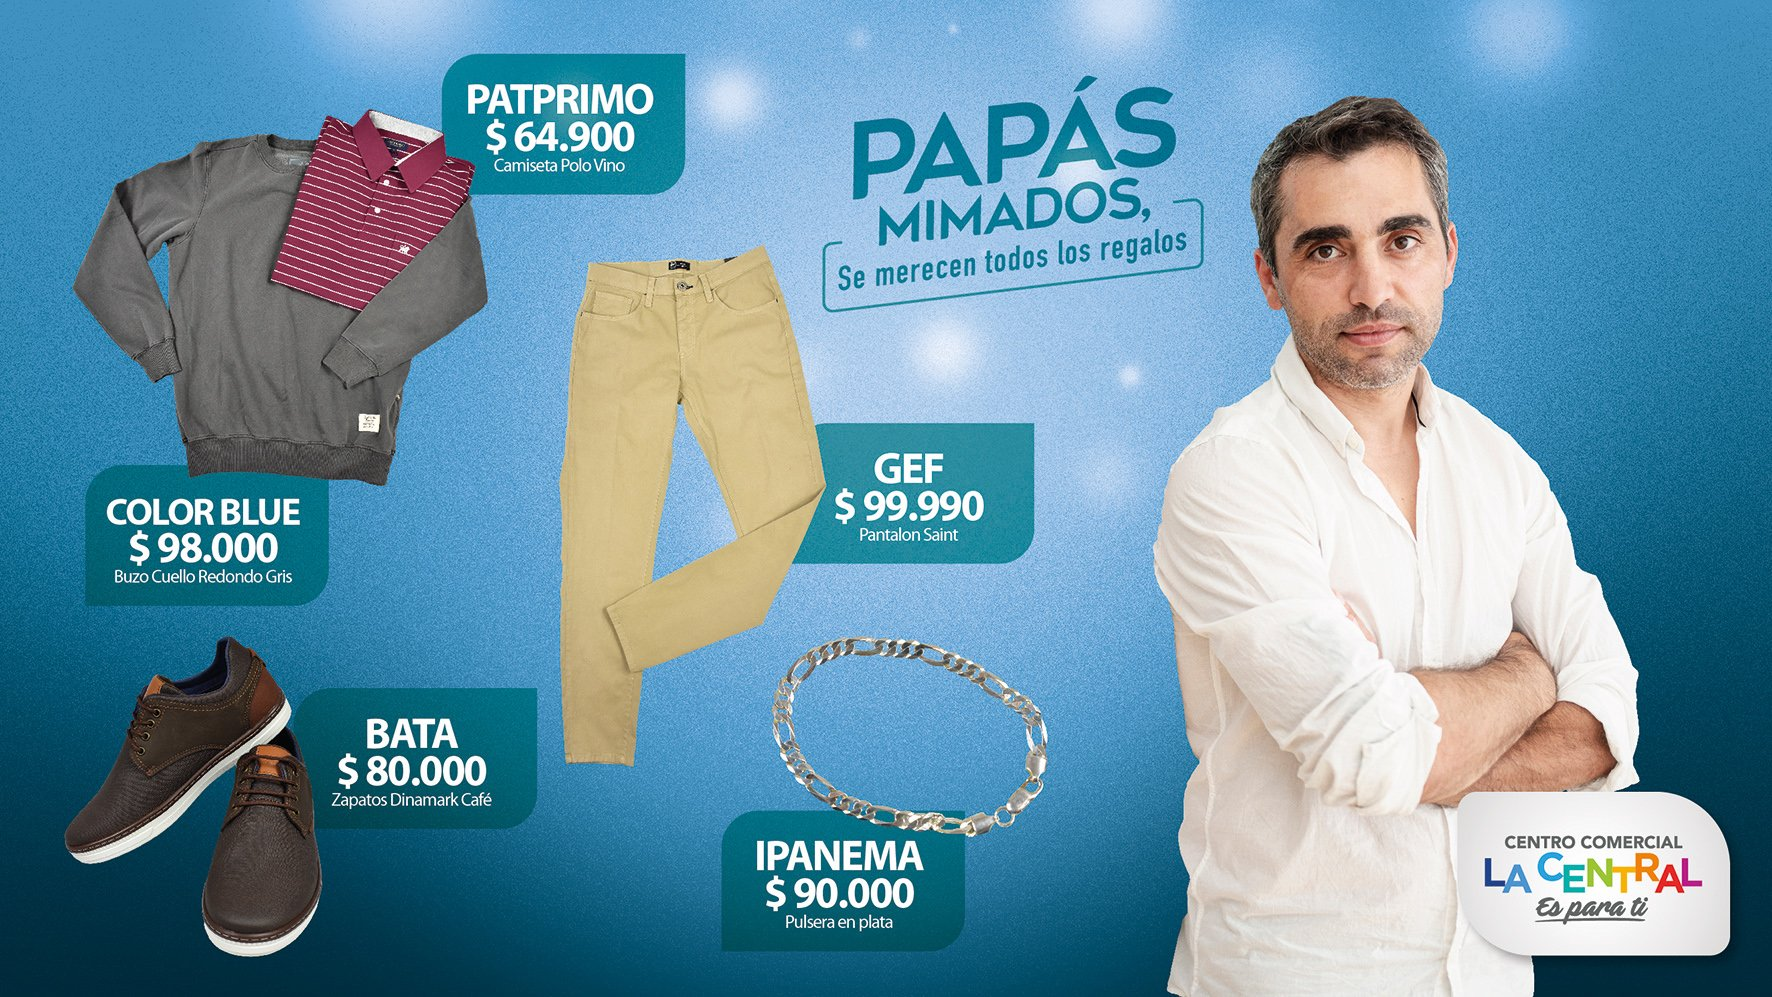 CATALOGO_LACENTRAL_PADRES_2021